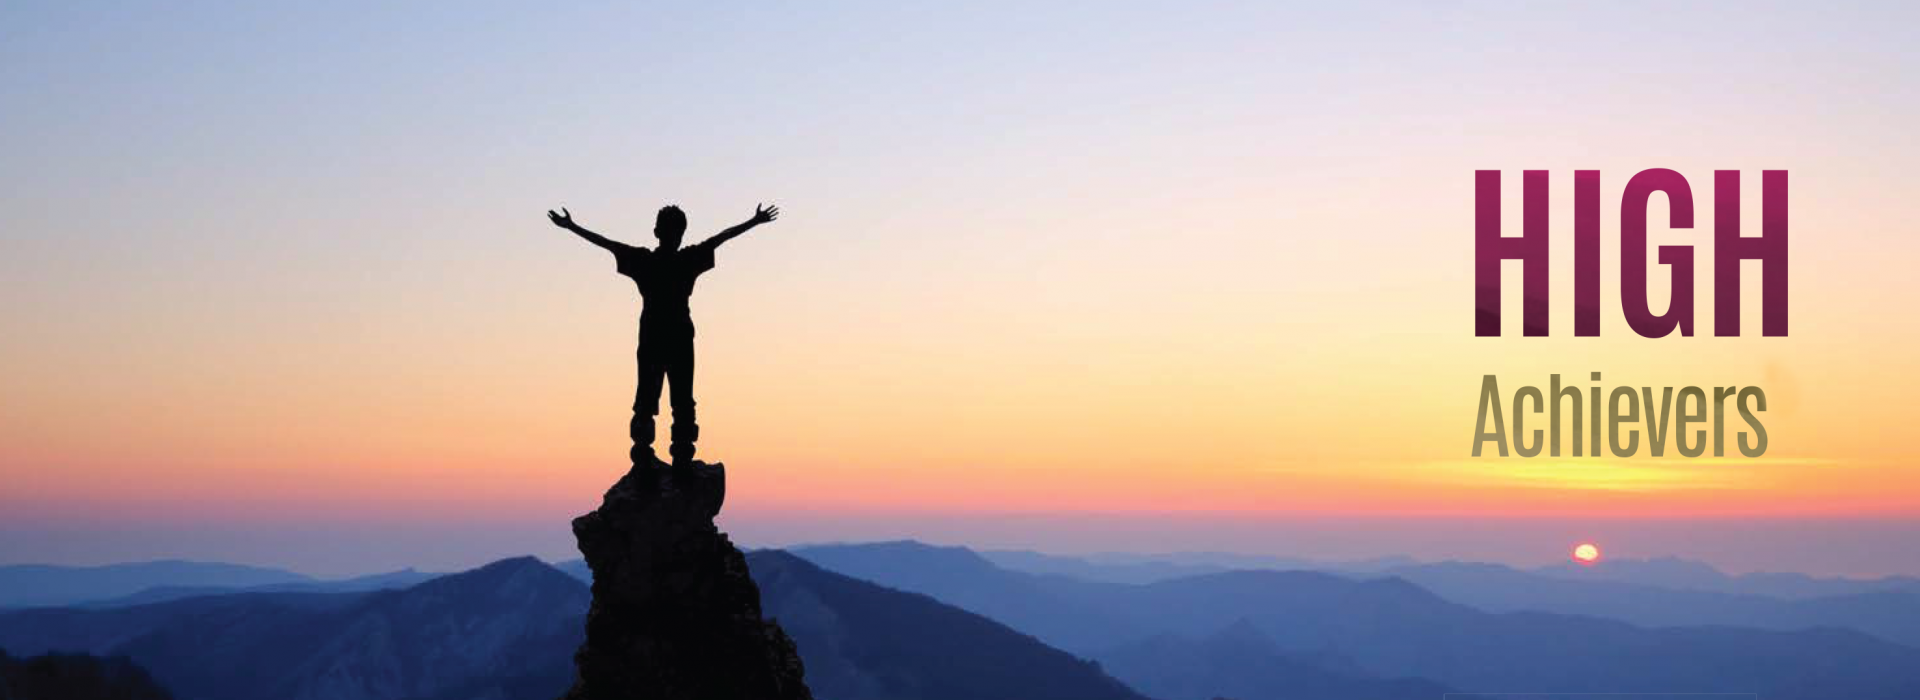 High achievers success, silhouette of person cheering on a mountaintop